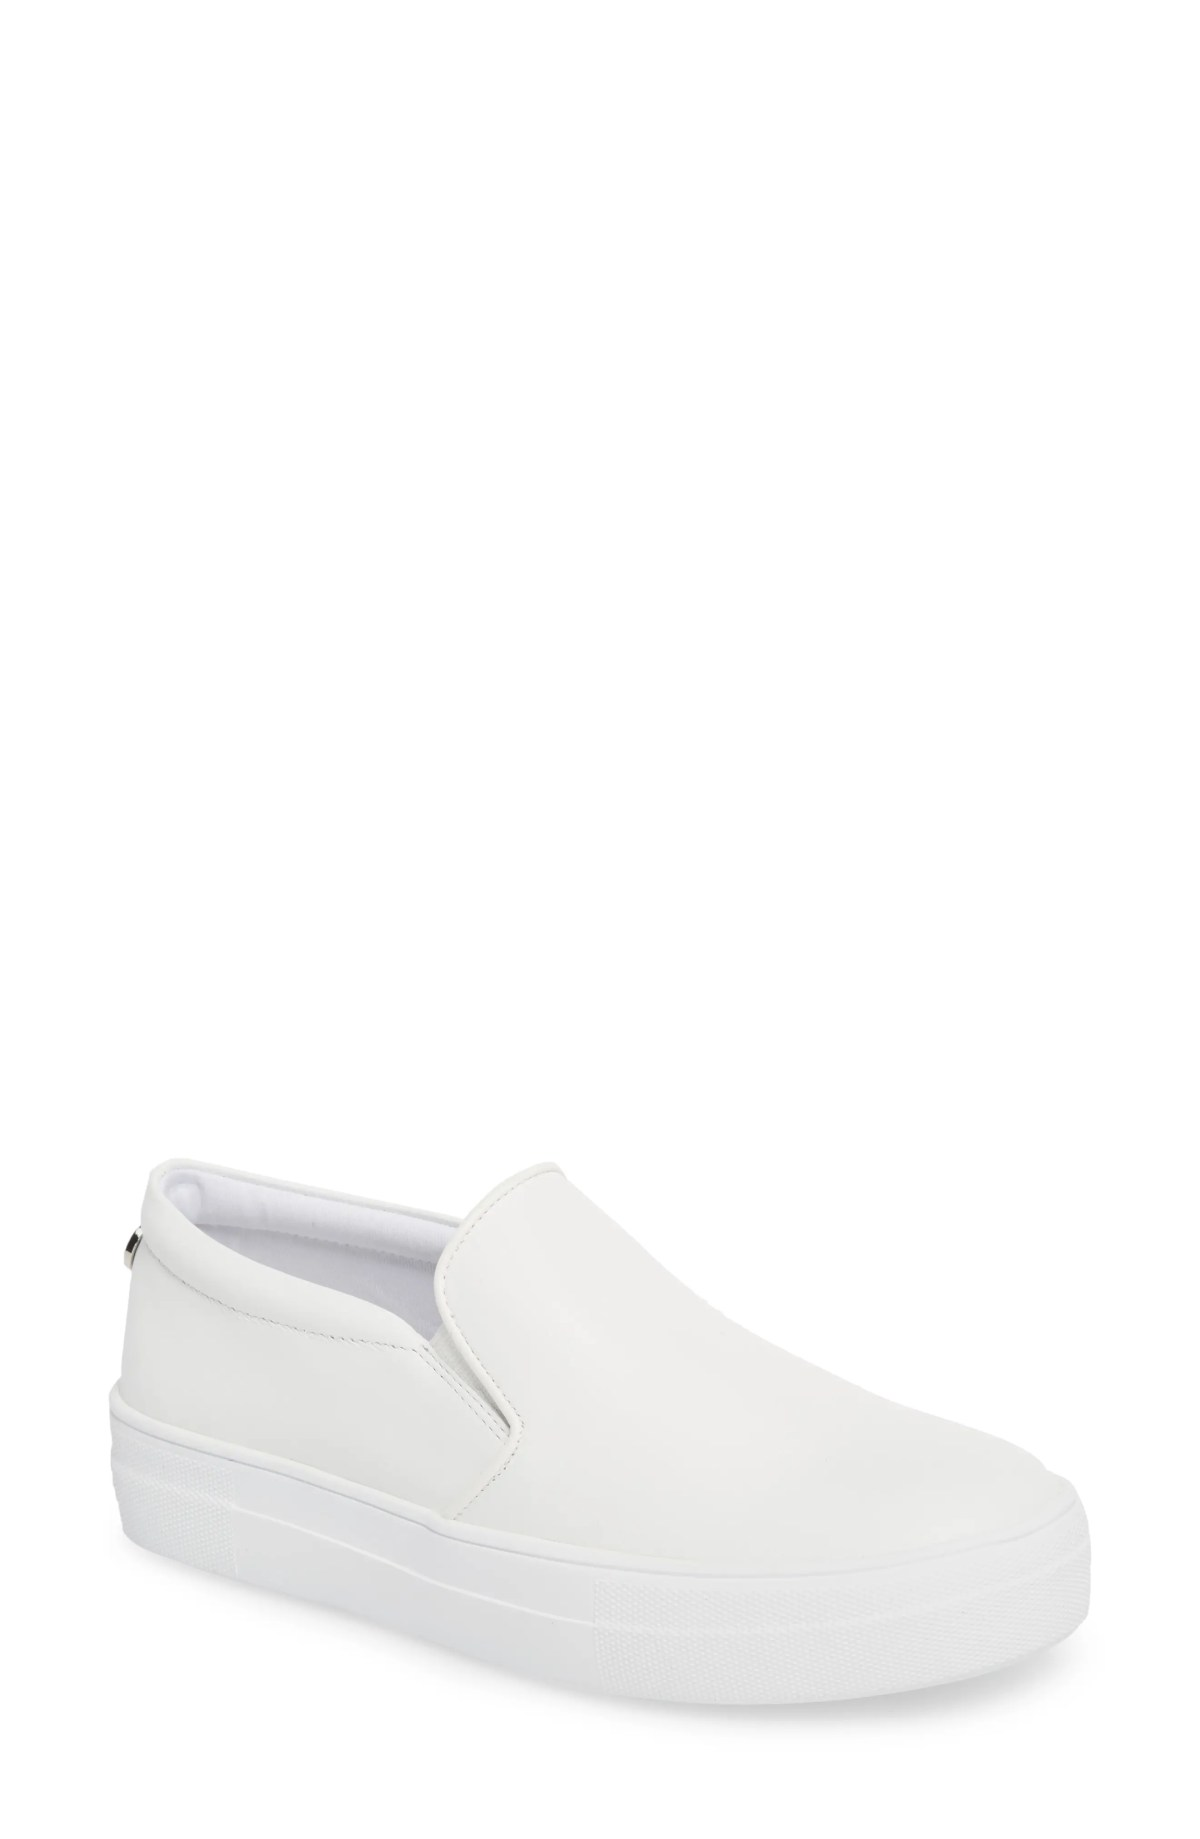 STEVE MADDEN Gills Platform Slip-On Sneaker, Main, color, WHITE LEATHER